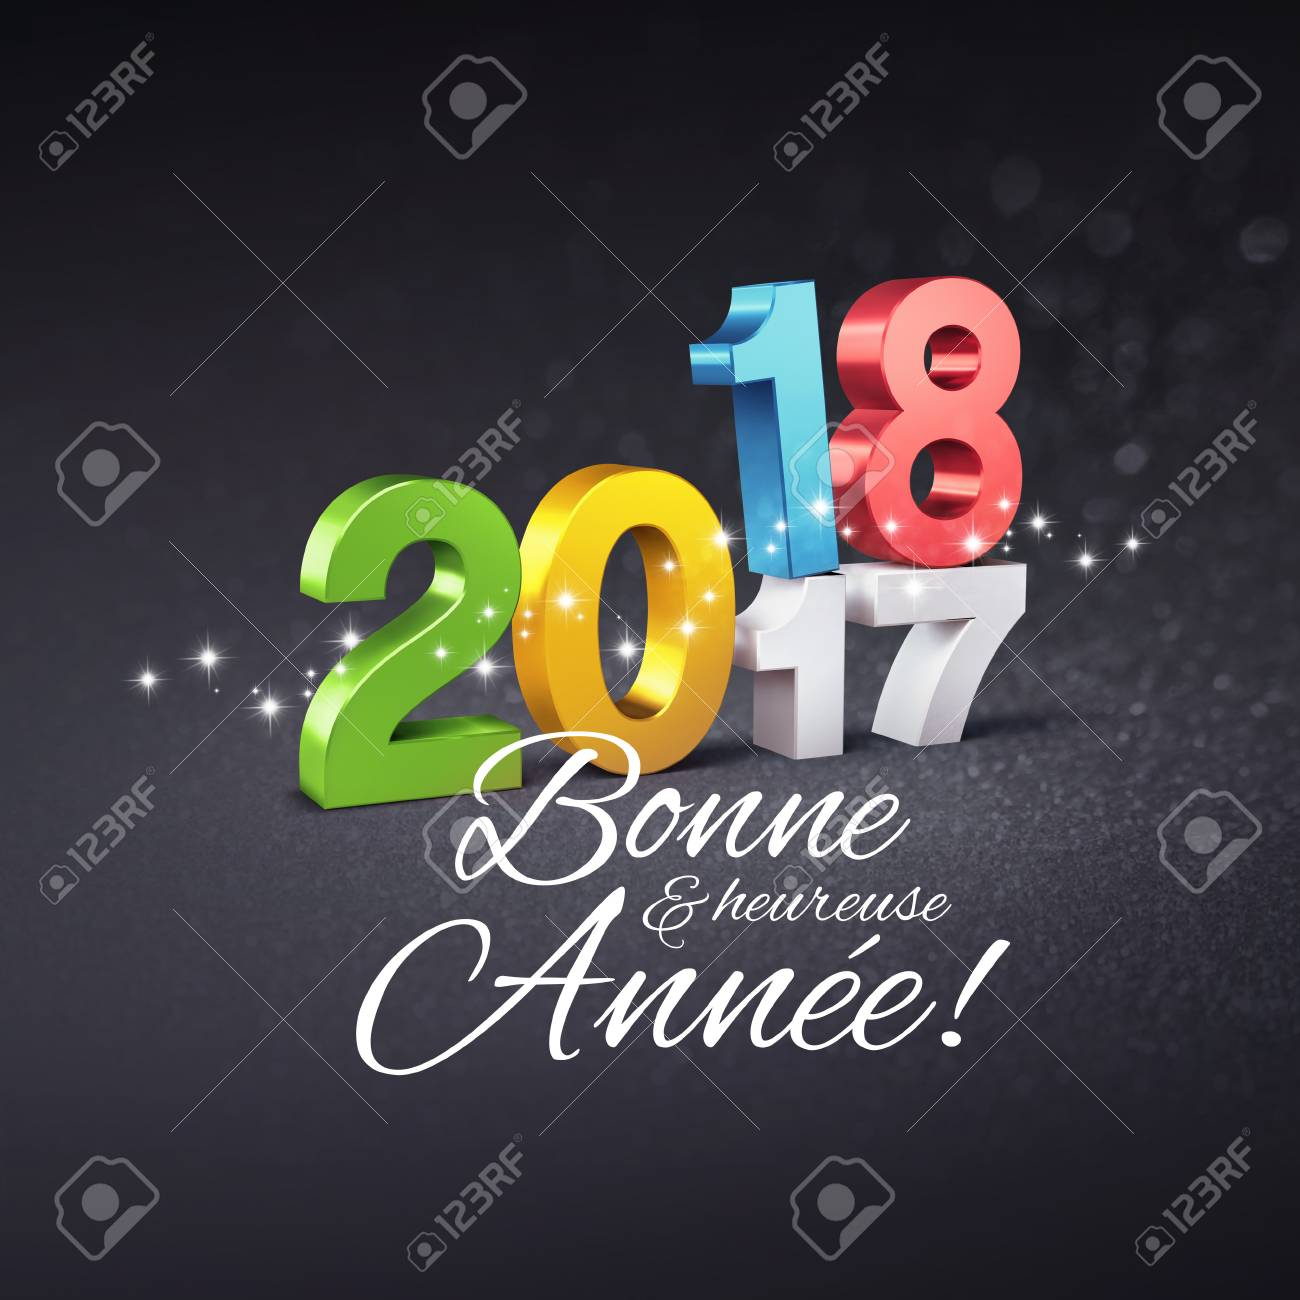 Colorful new year date 2018 above 2017 and greetings in french colorful new year date 2018 above 2017 and greetings in french language on a festive m4hsunfo